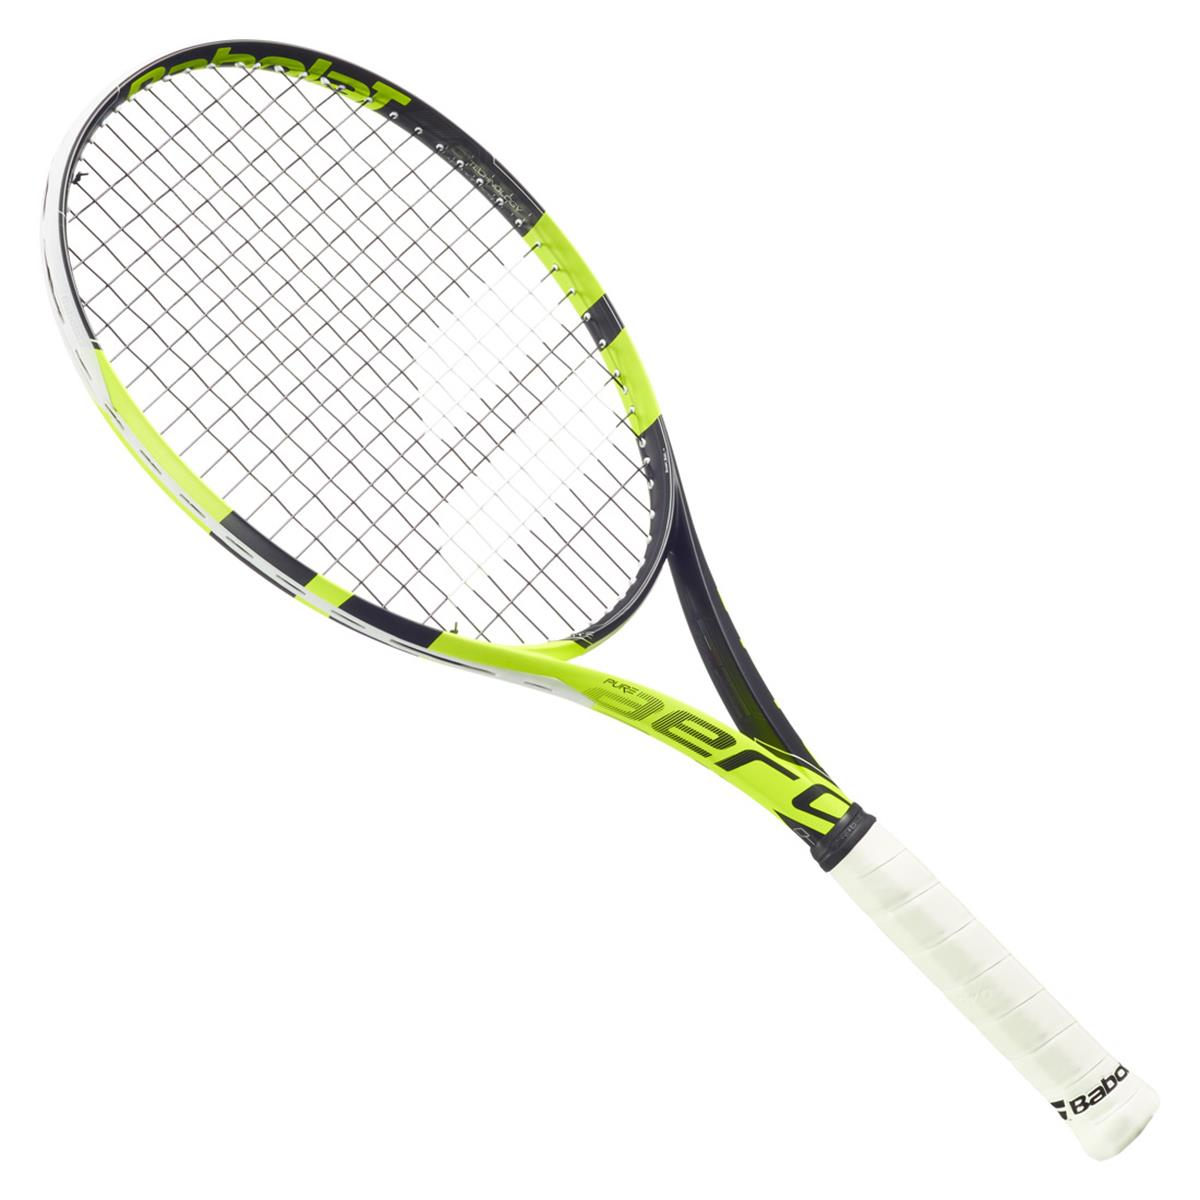 babolat pure aero lite tennis racket direct tennis. Black Bedroom Furniture Sets. Home Design Ideas